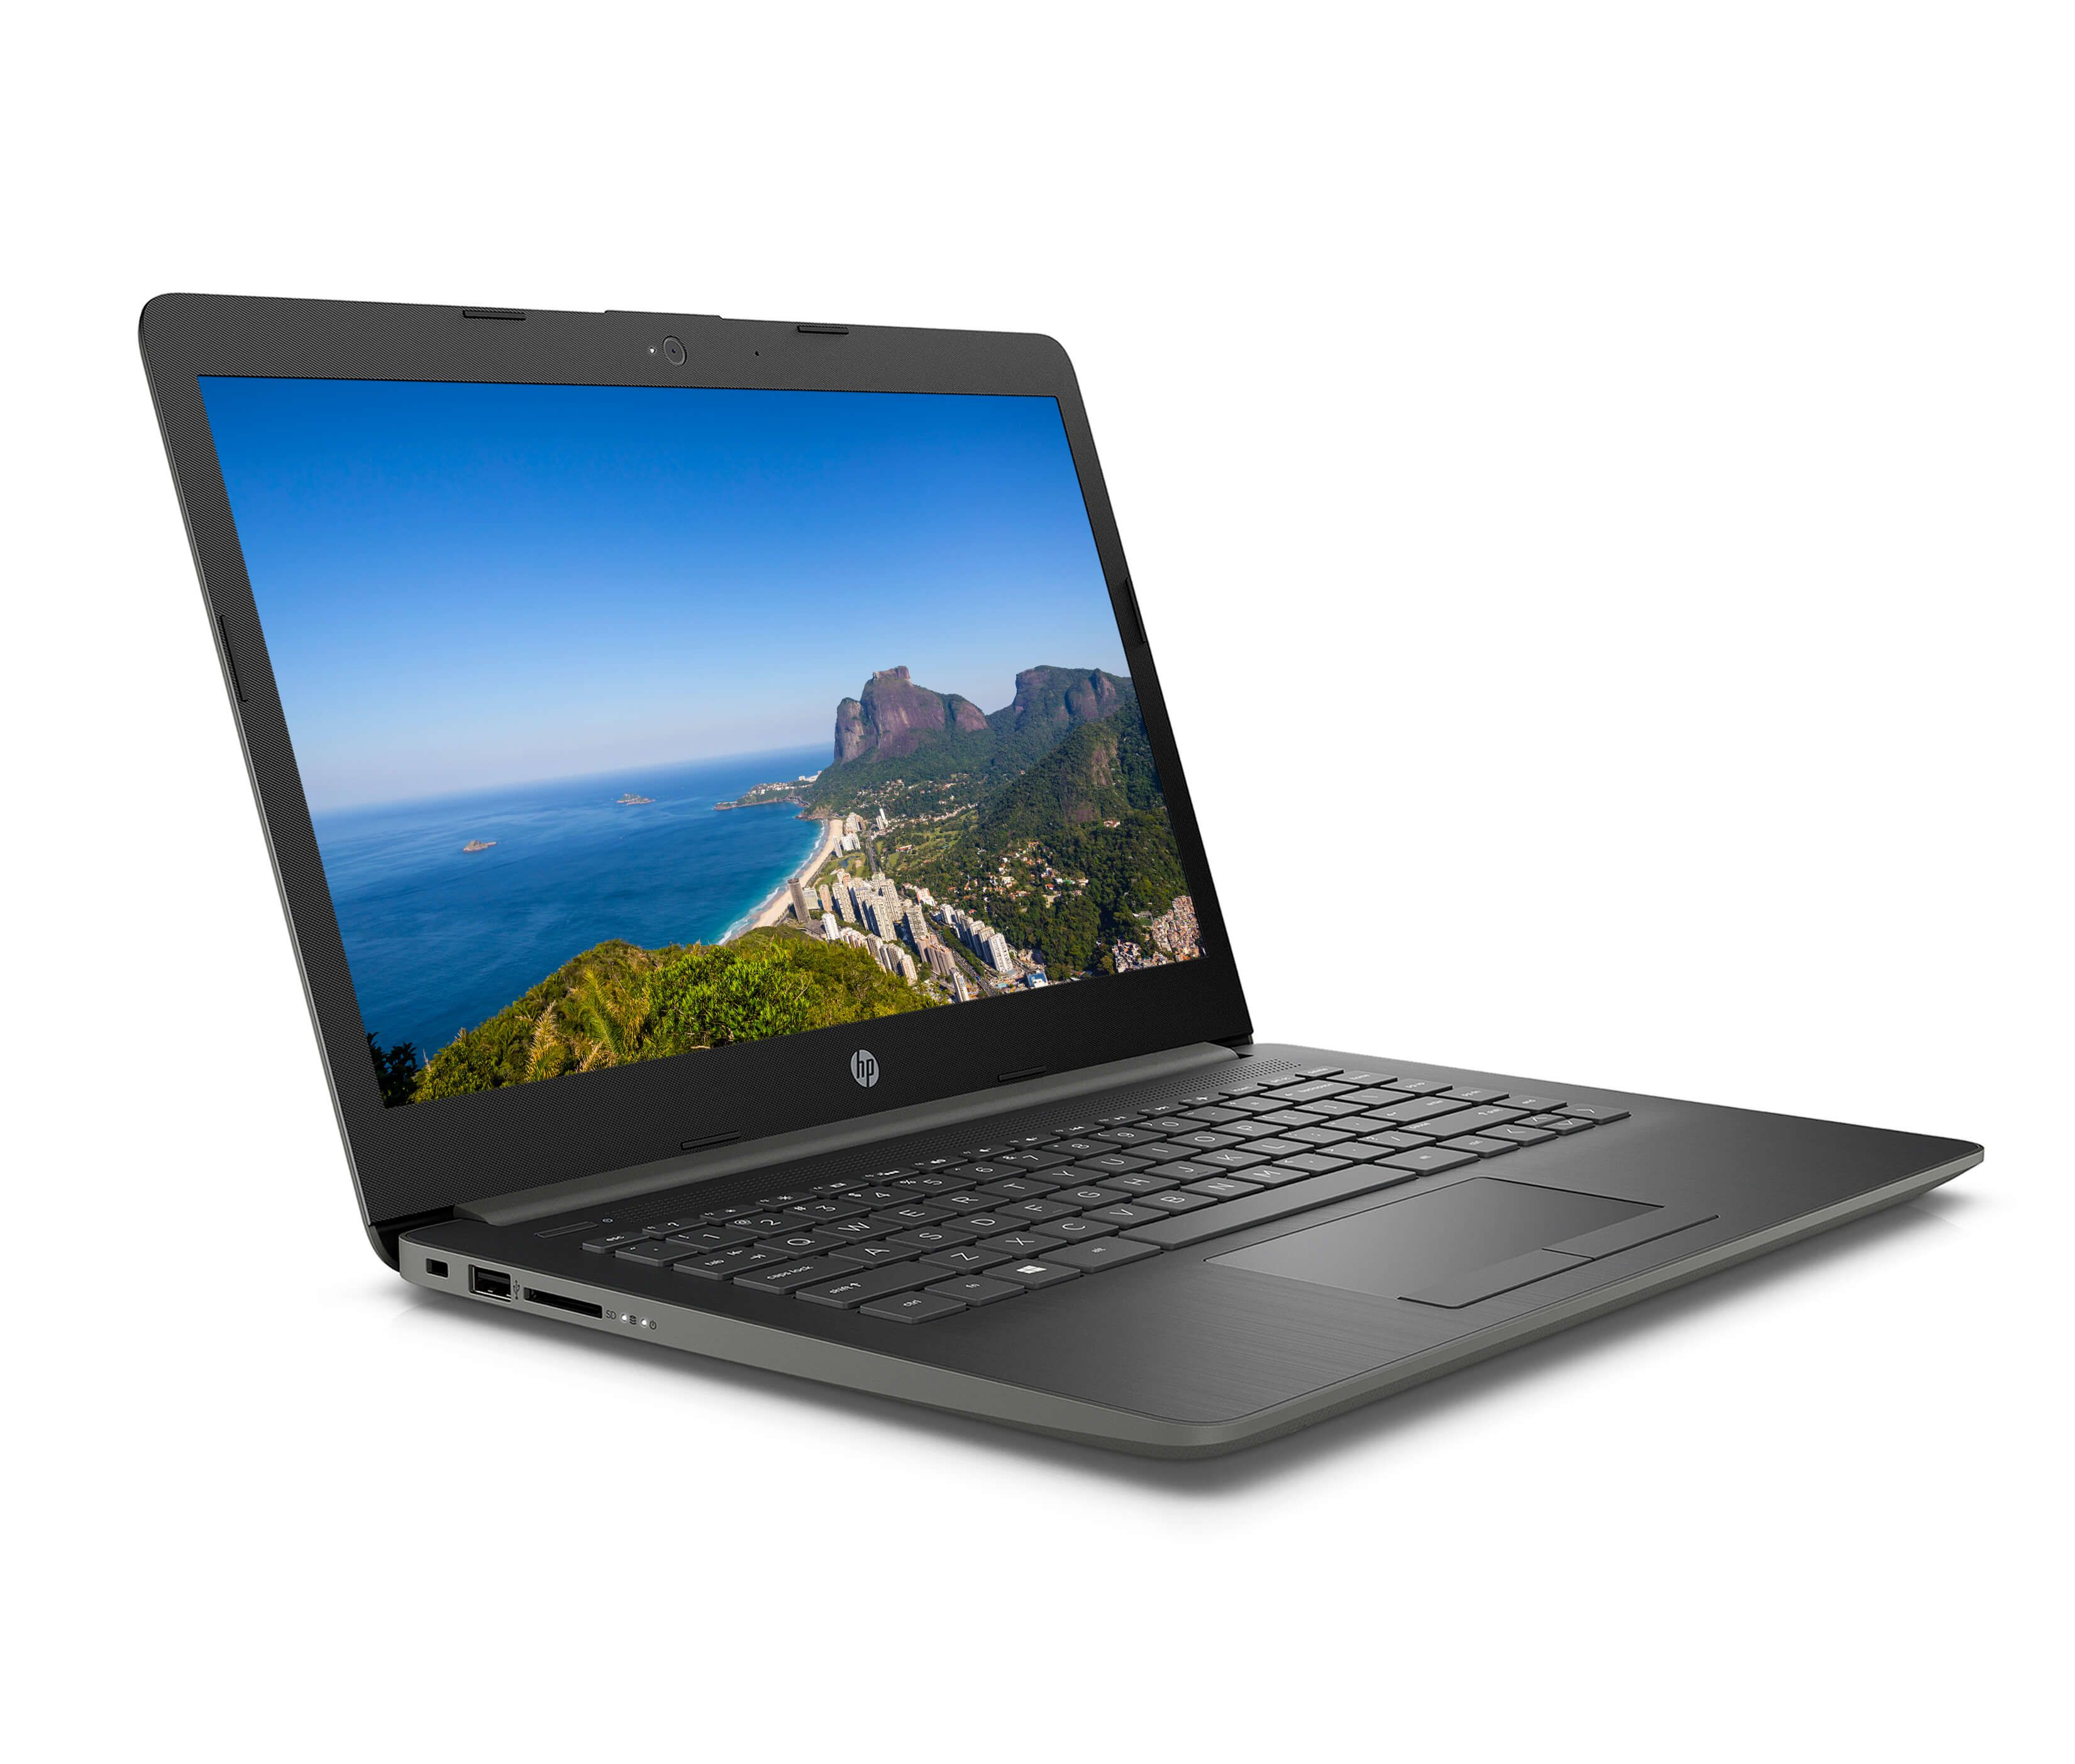 Buy Hp Stream 14 Cm0506sa 14 Laptop Amd A4 64 Gb Emmc Silver Free Delivery Currys In 2020 Best Buy Laptops Athlon Laptop Cheap